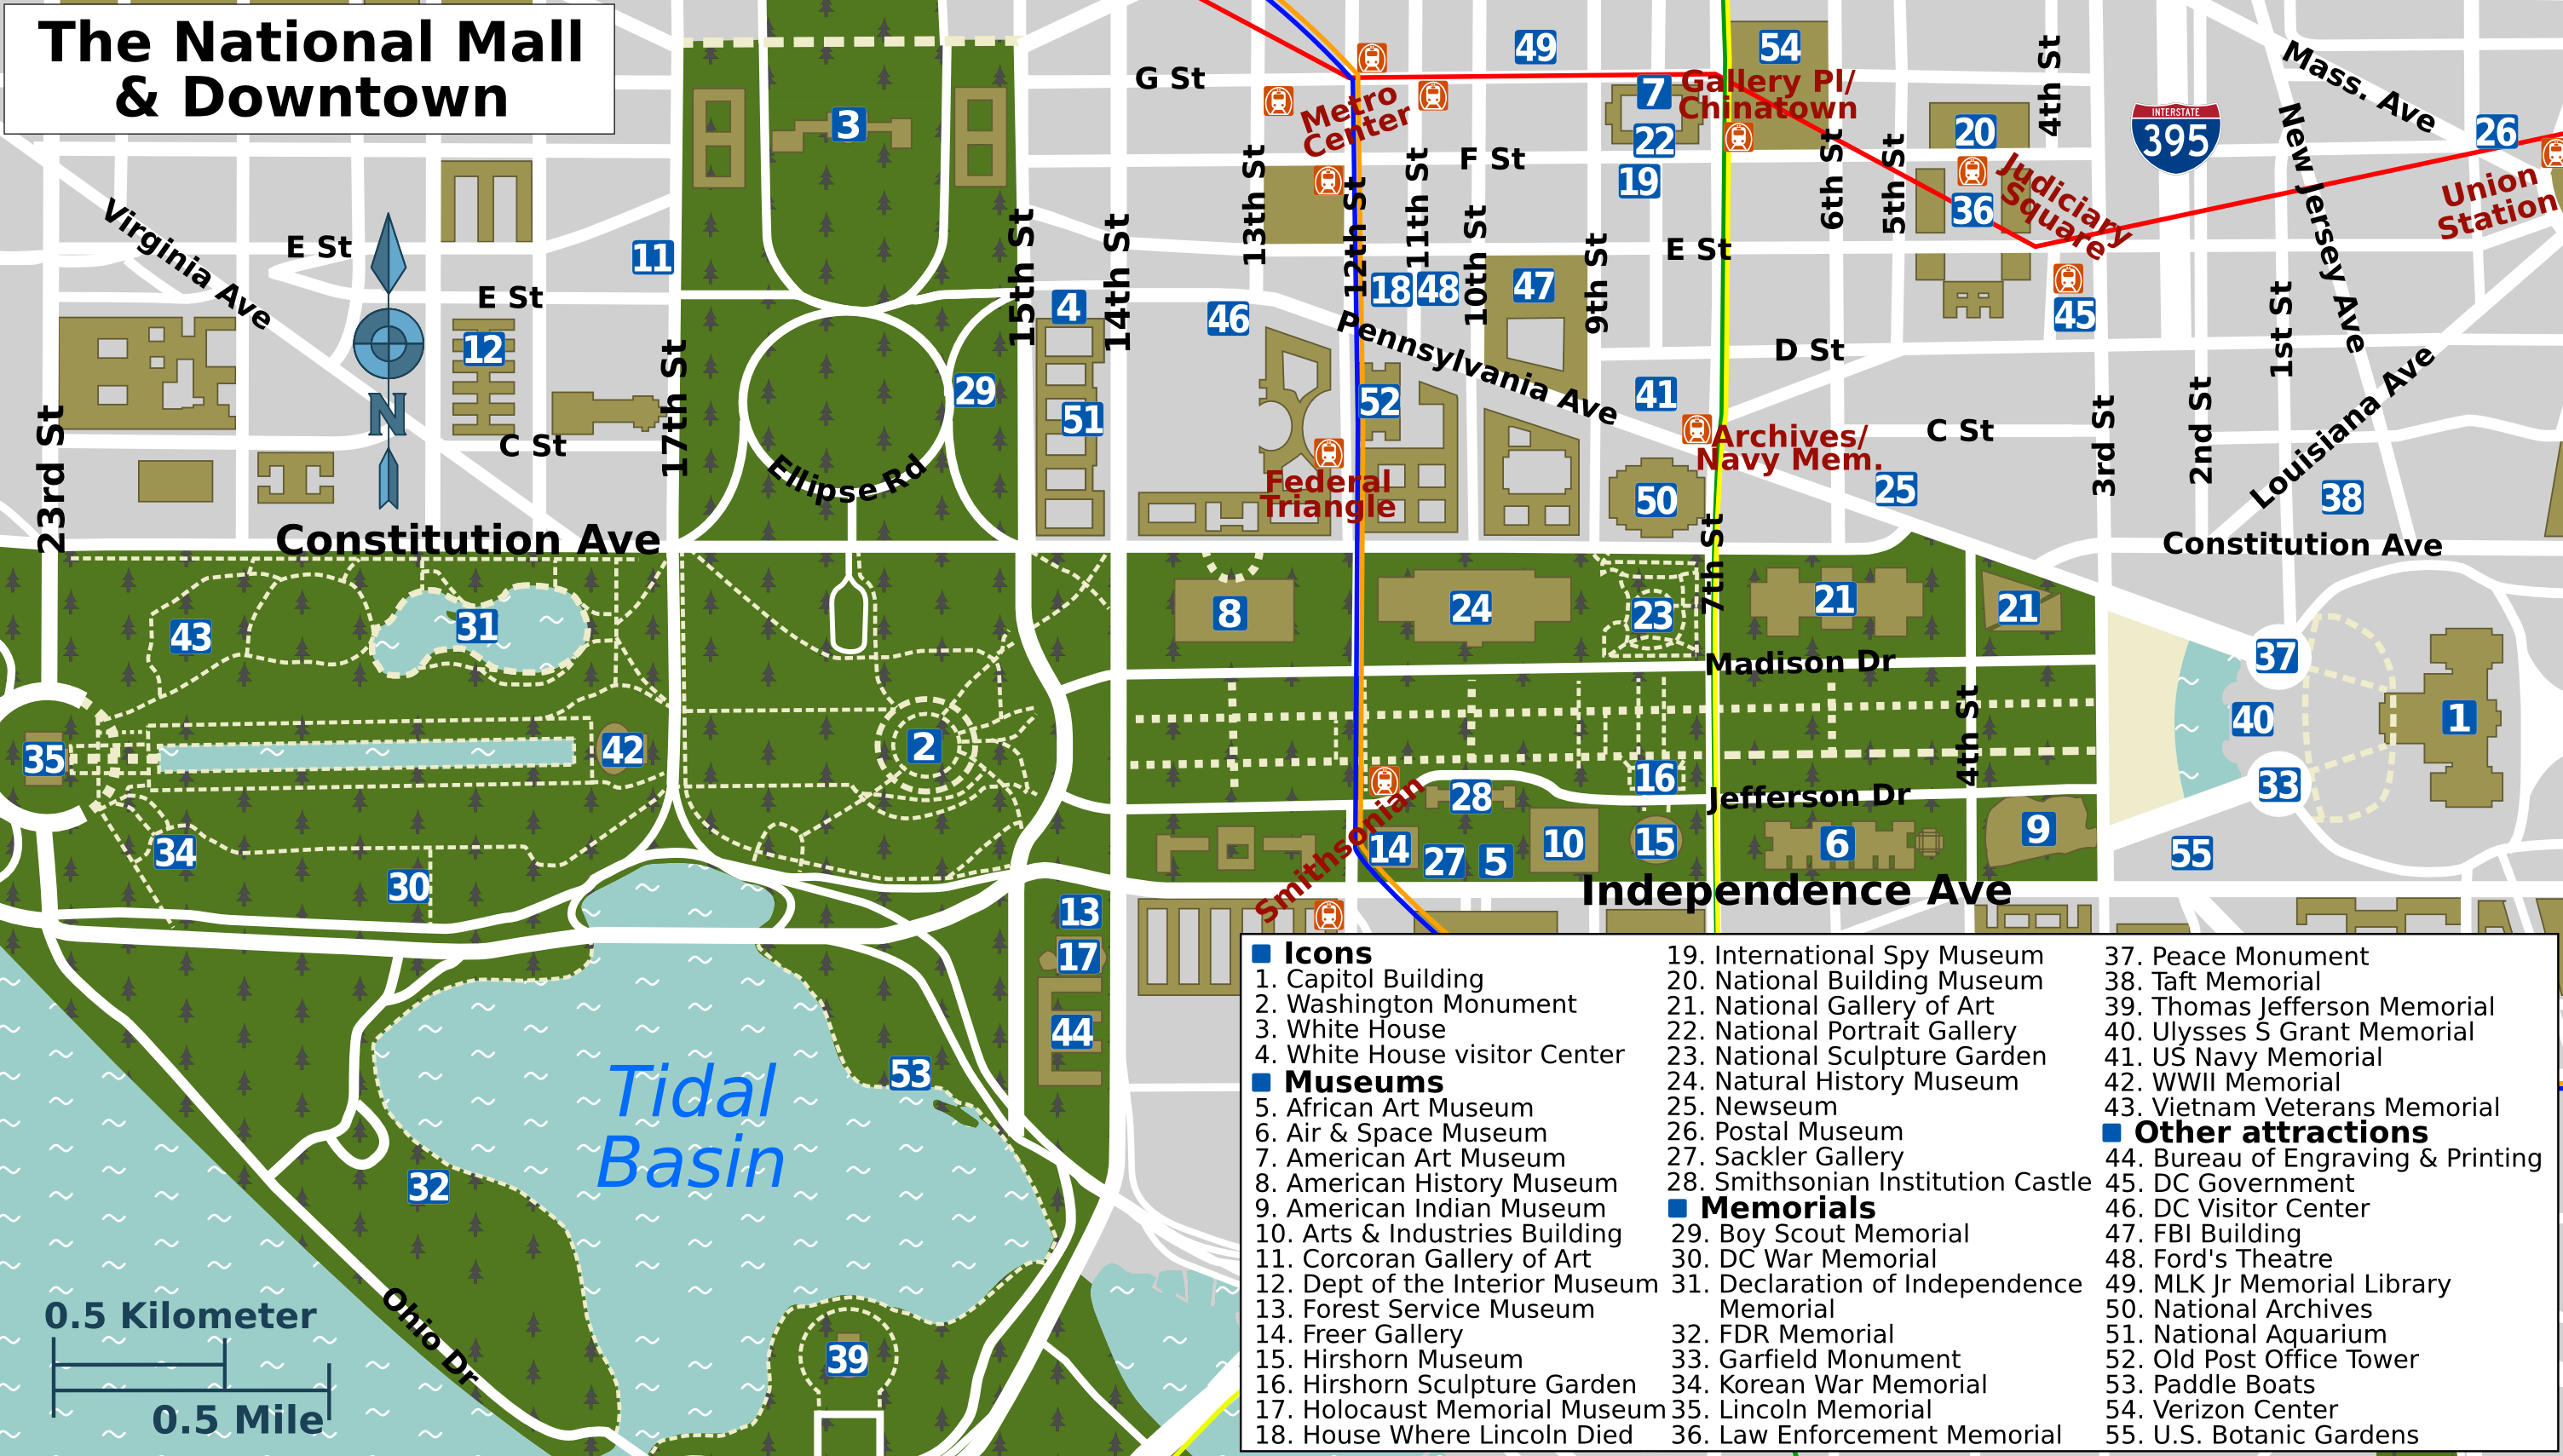 File:National Mall map.png   Wikimedia Commons